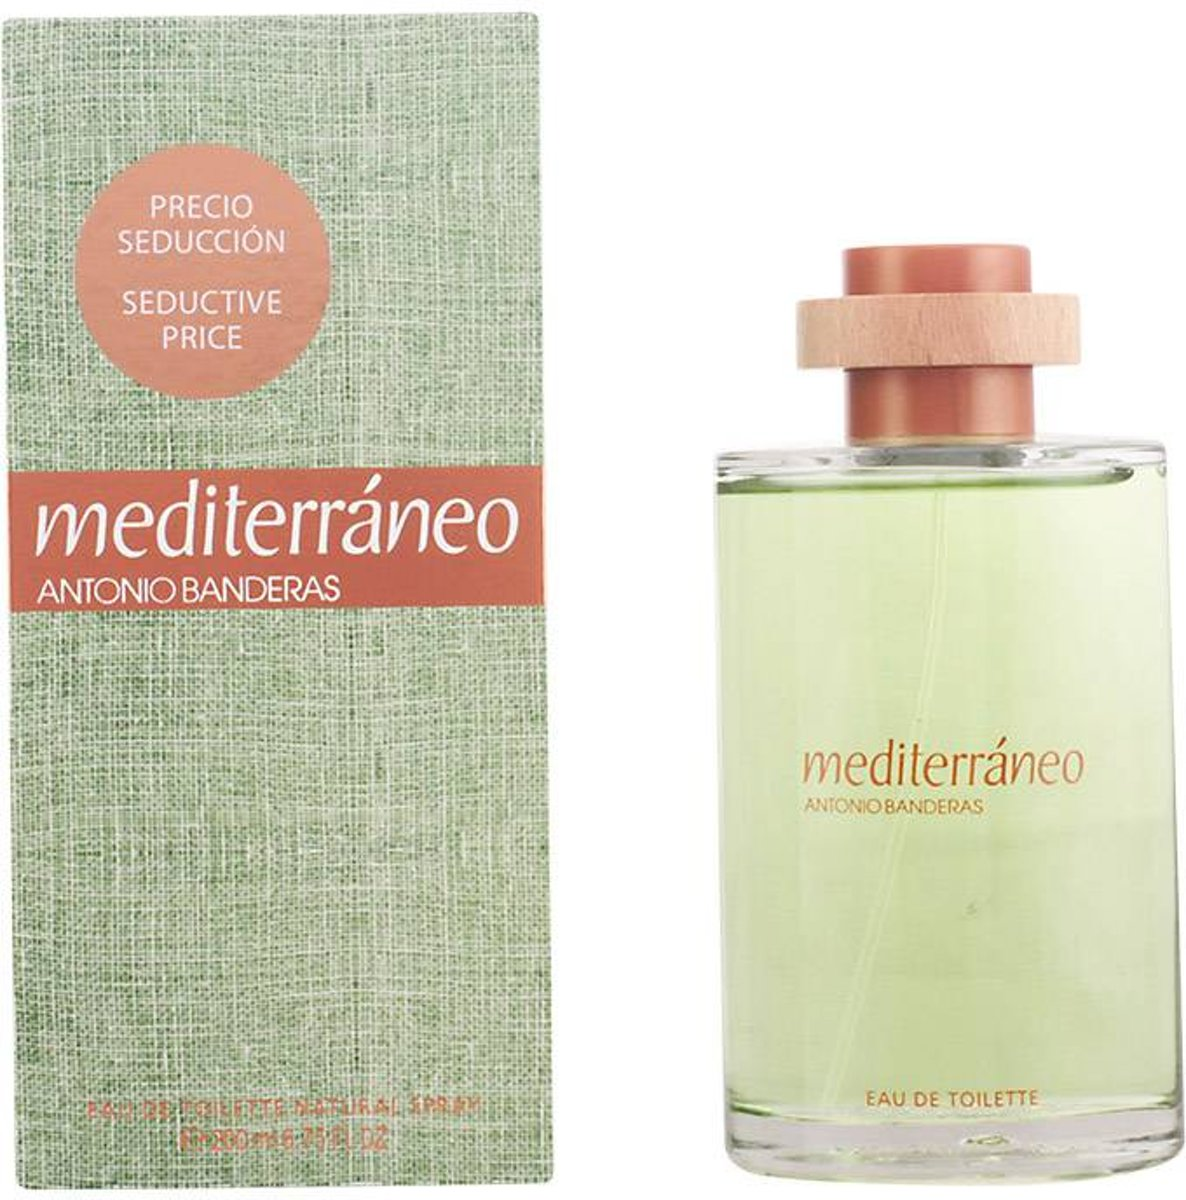 MEDITERRANEO eau de toilette spray 200 ml